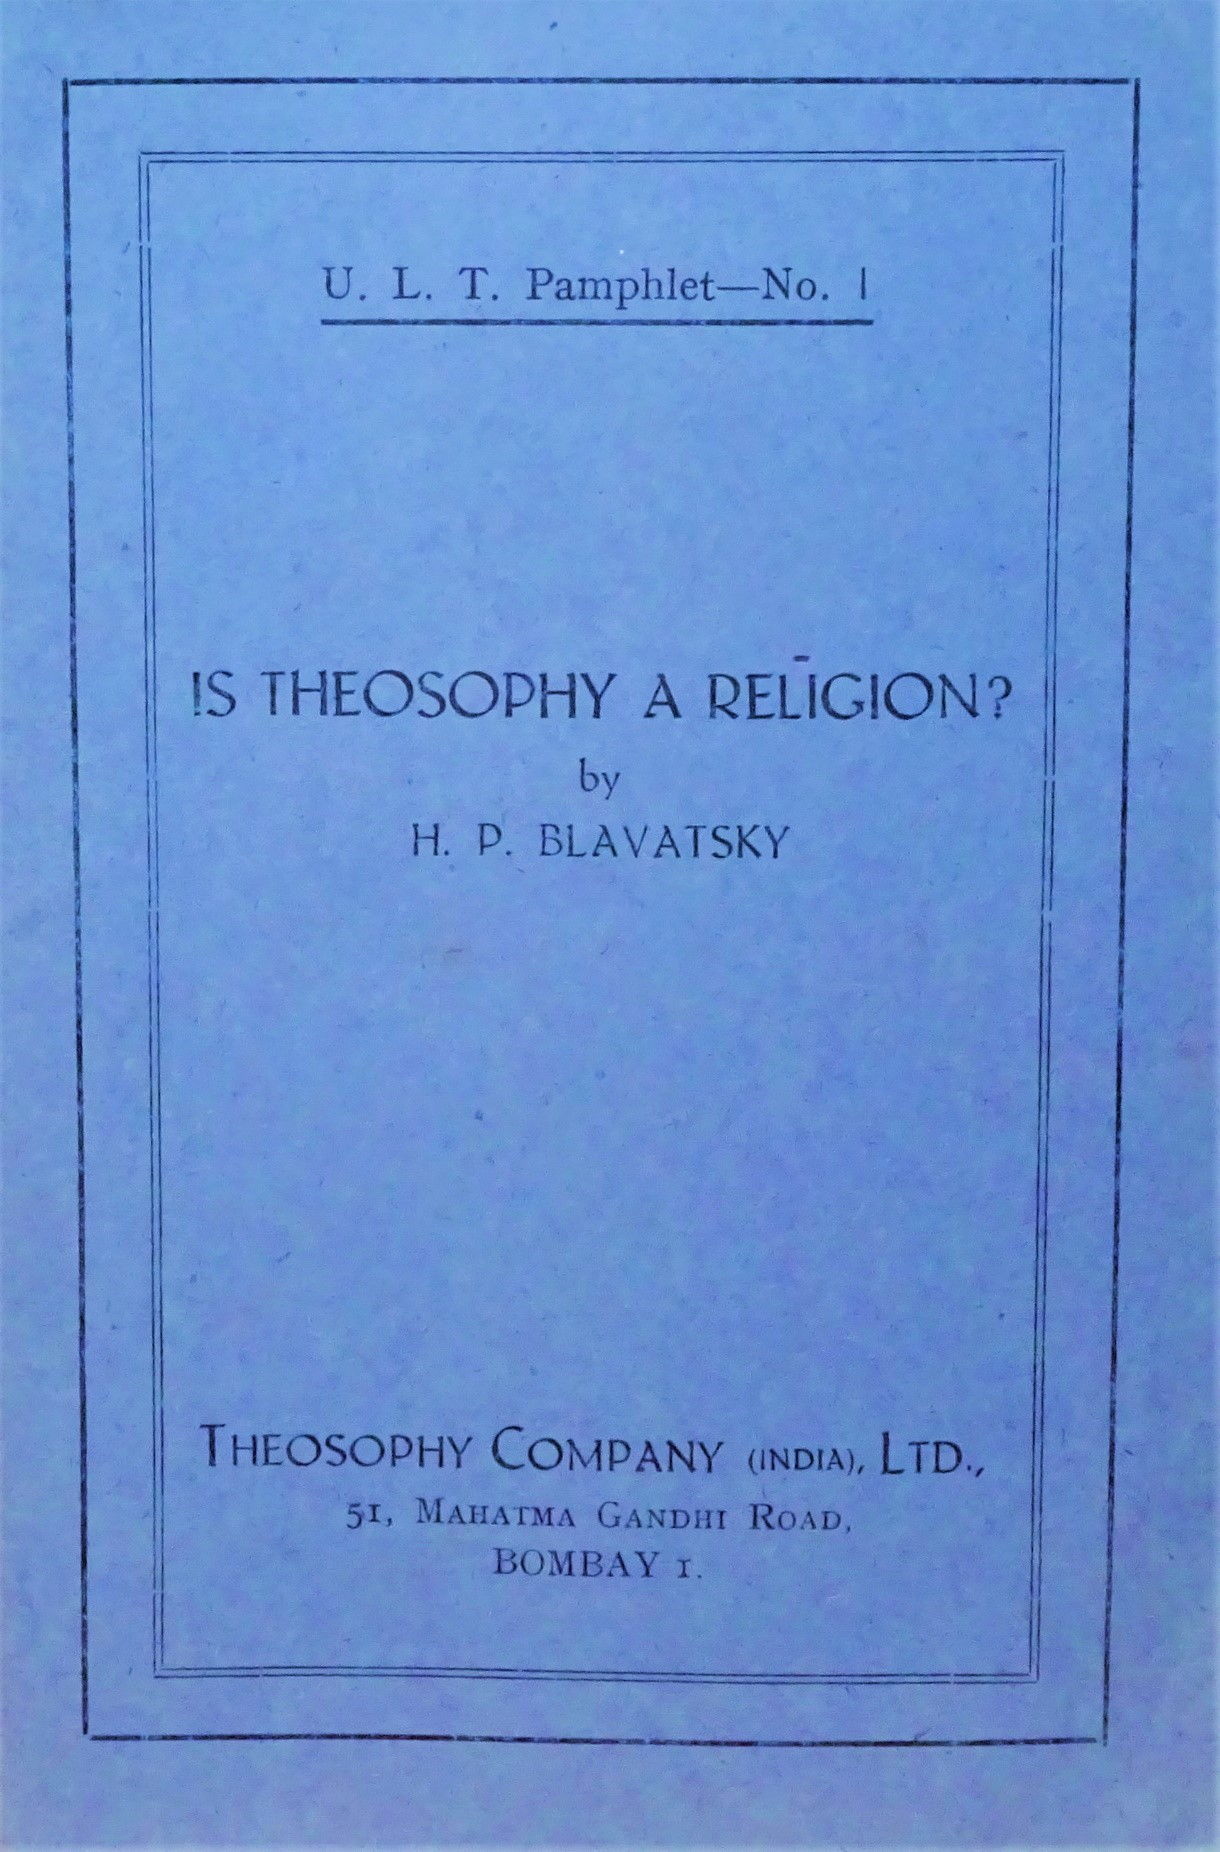 Collected Theosophical Articles – the ULT Series of 36 Pamphlets by Damodar Mavalankar, H.P.Blavatsky, Maha Chohan, Mahatma Koot Humi, William Q Judge